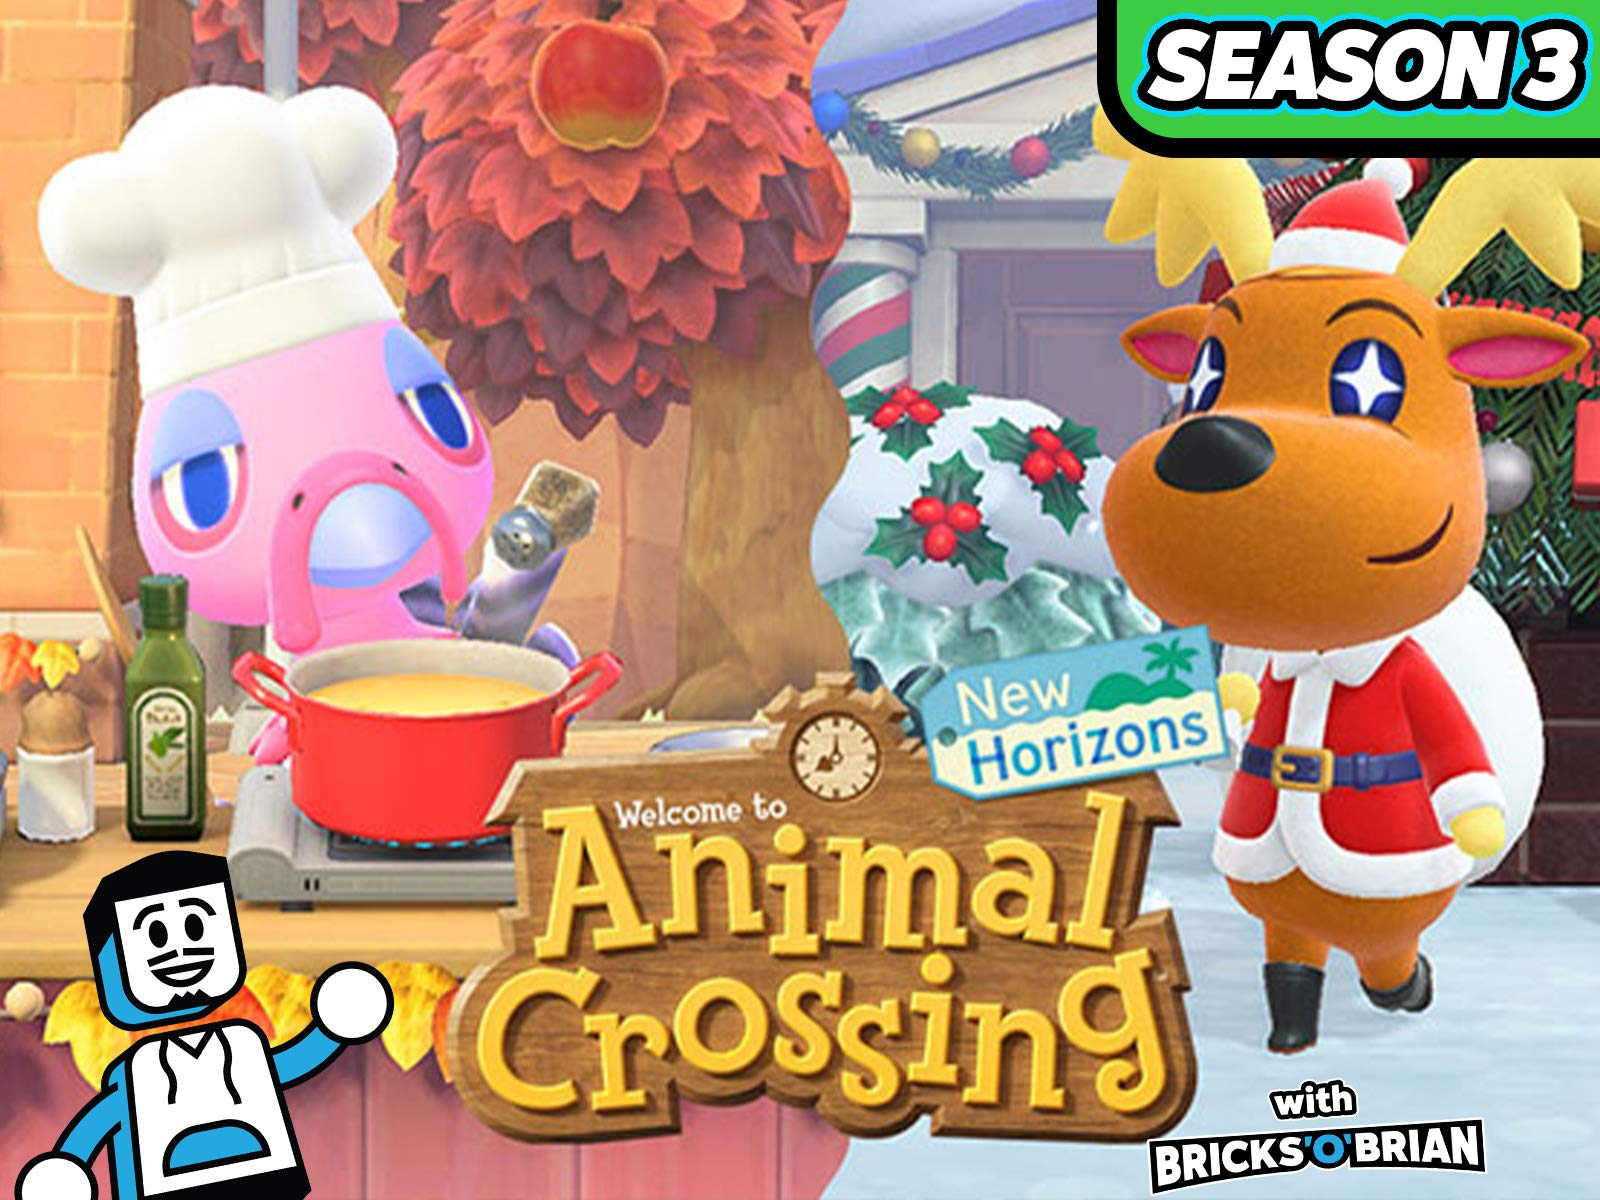 Clip: Animal Crossing New Horizons with Bricks 'O' Brian! on Amazon Prime Video UK